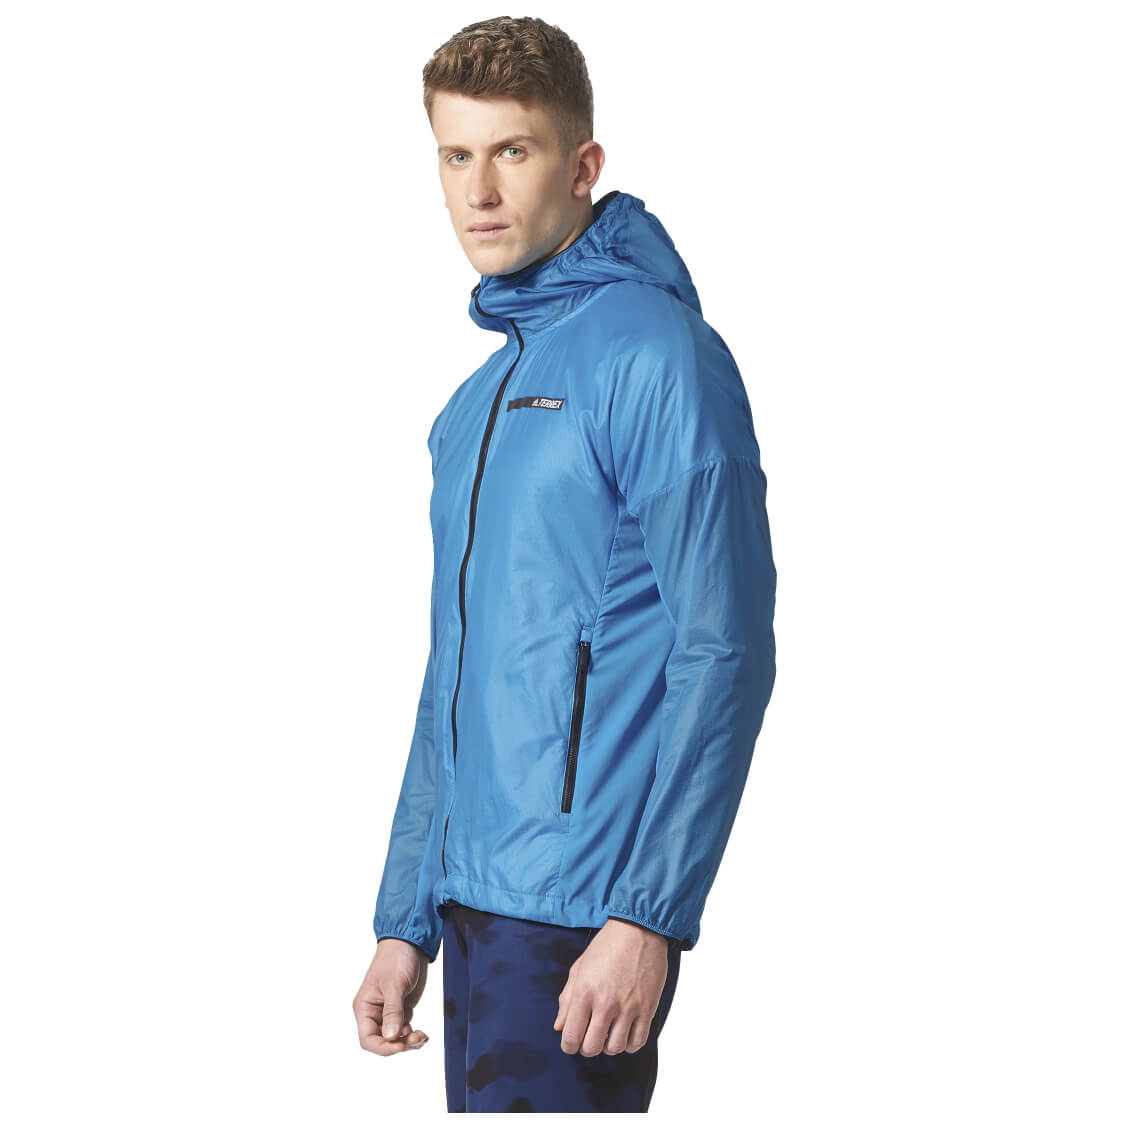 43345d467 Adidas Terrex Agravic Alpha Hooded Shield - Synthetic Jacket Men s ...